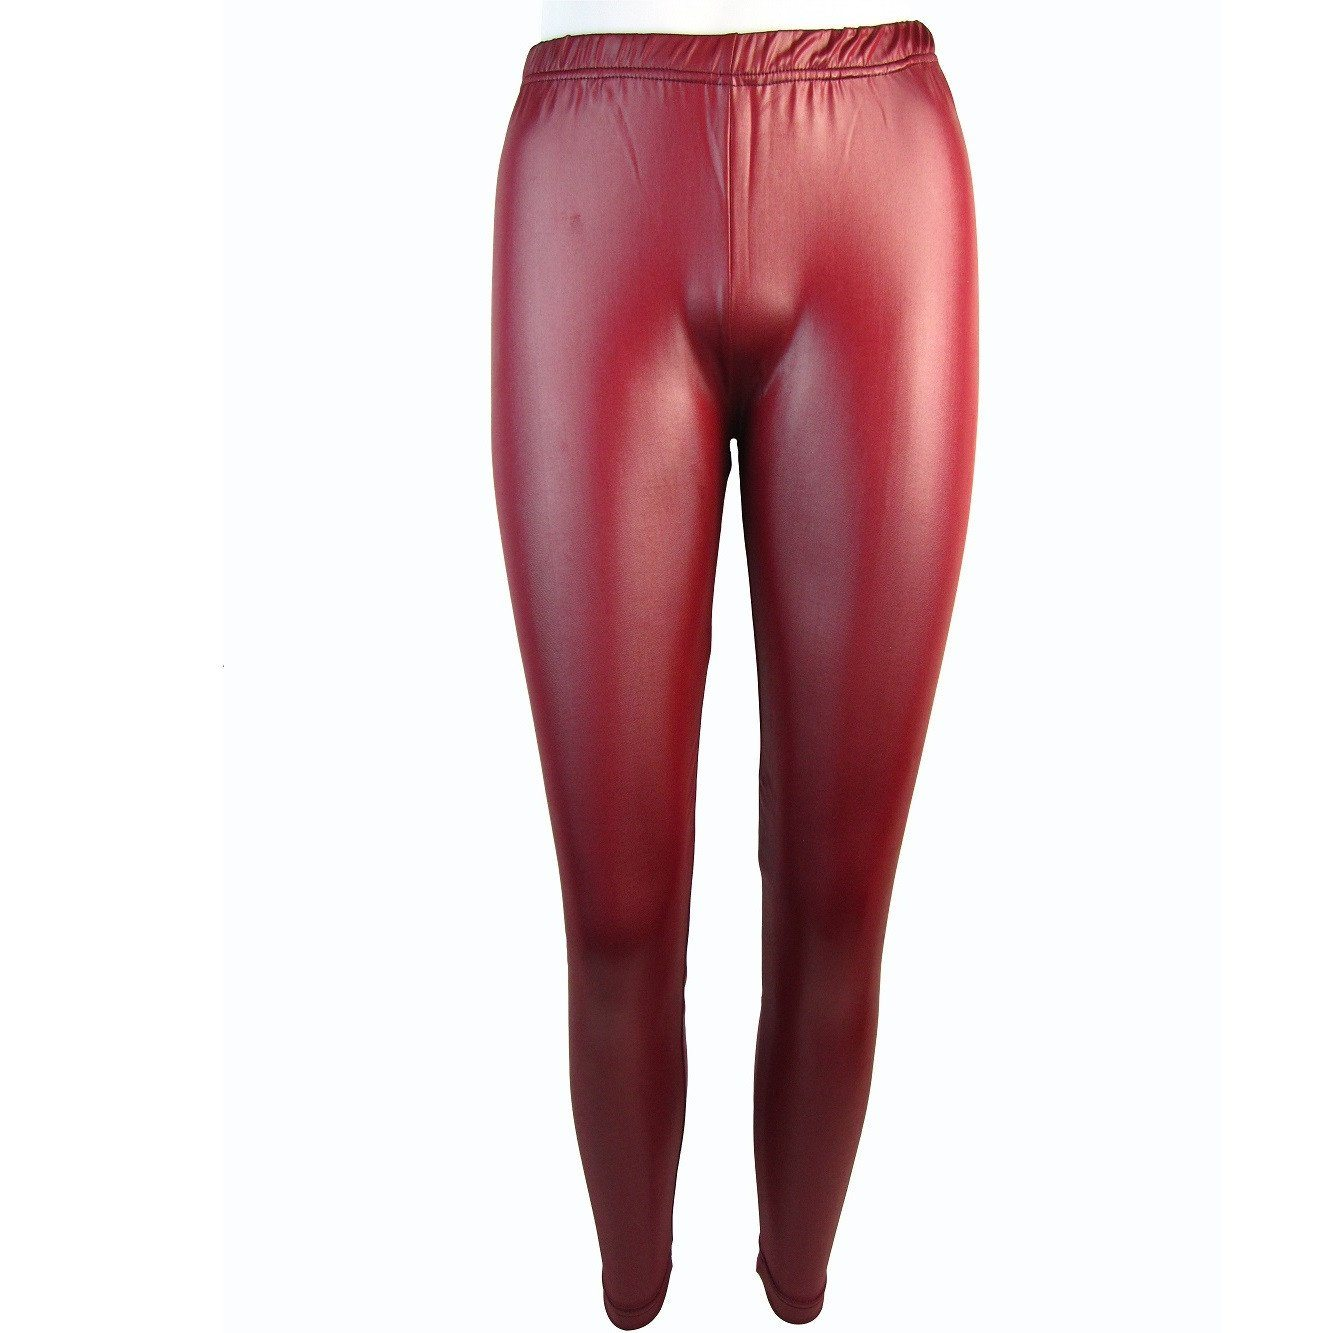 Flirt Wet Look Shiny Leggings - Leggsbeautiful